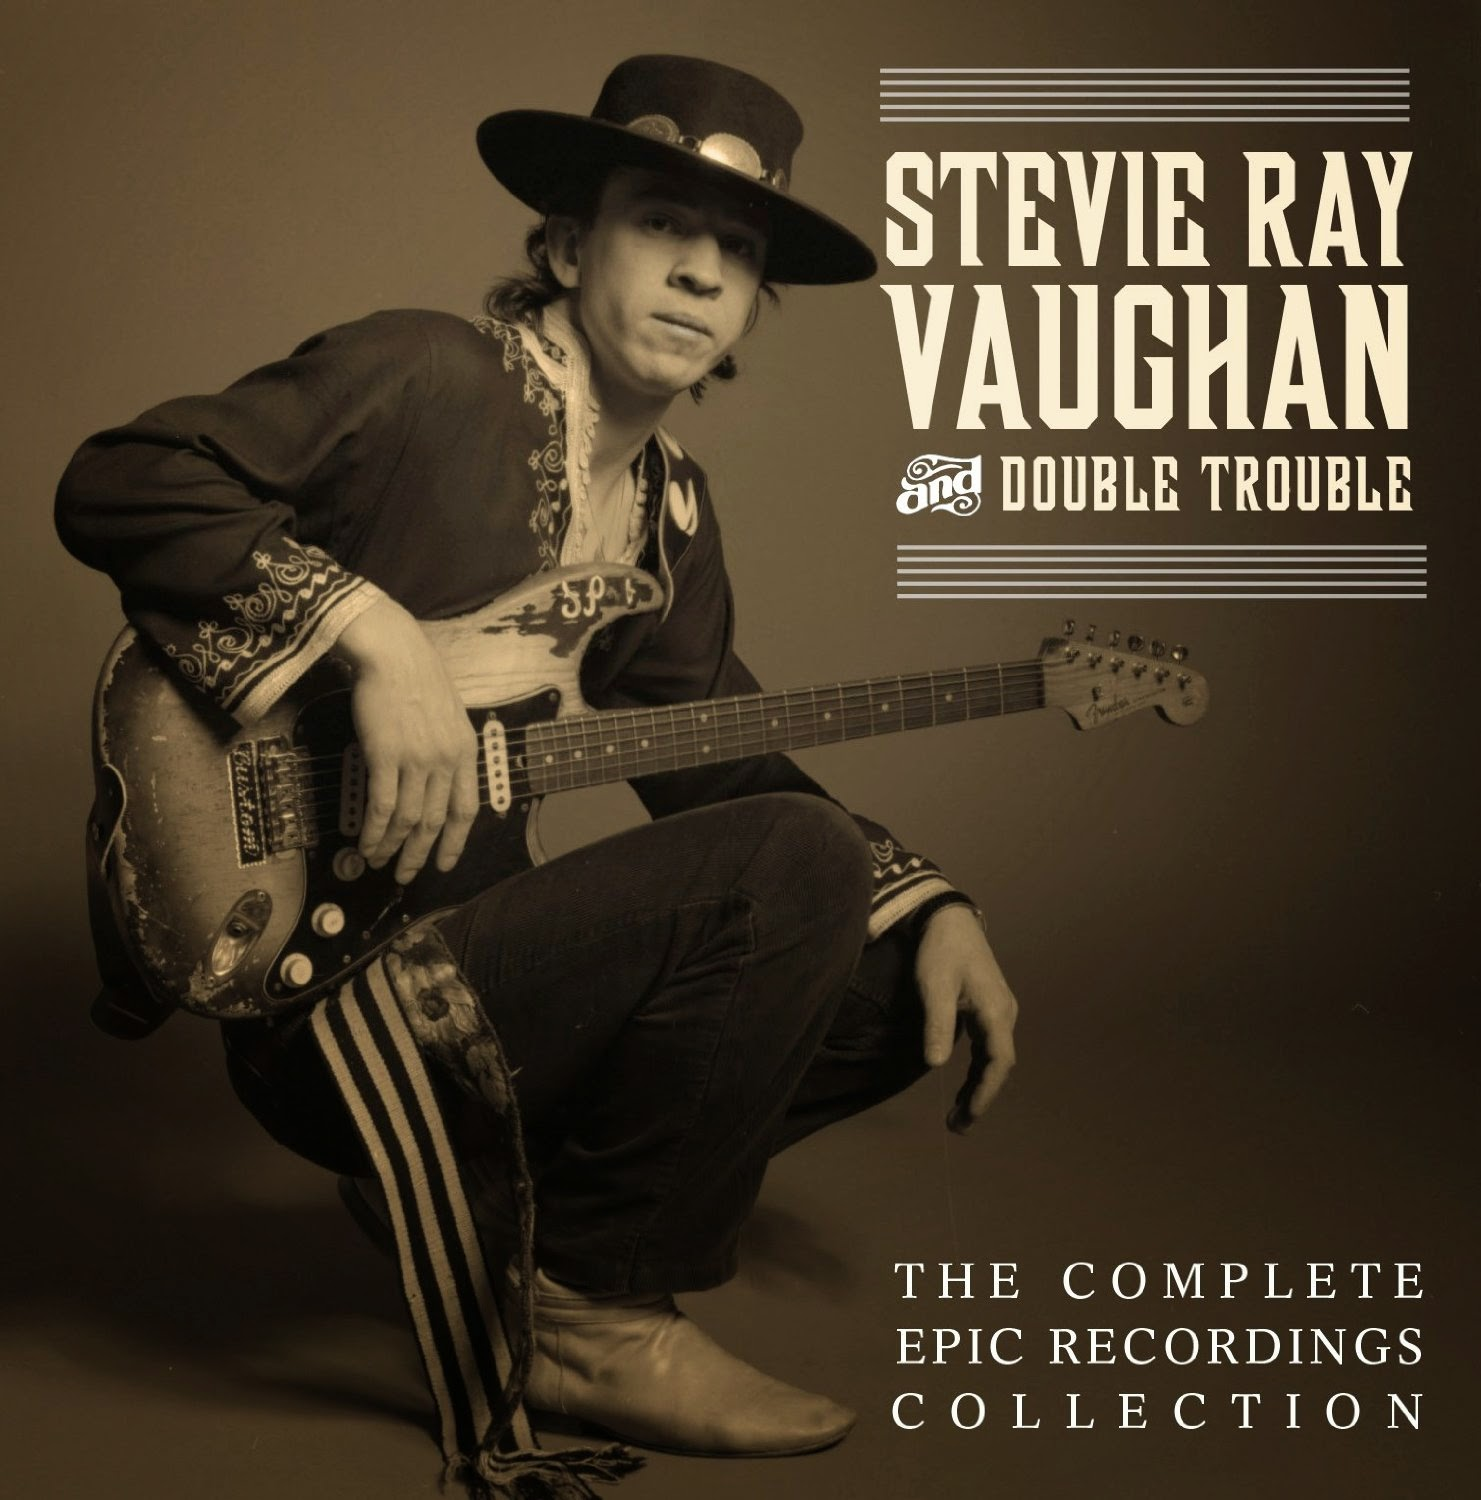 29653b75f4f81 Stevie Ray Vaughan career-spanning 12-disc box set due this fall